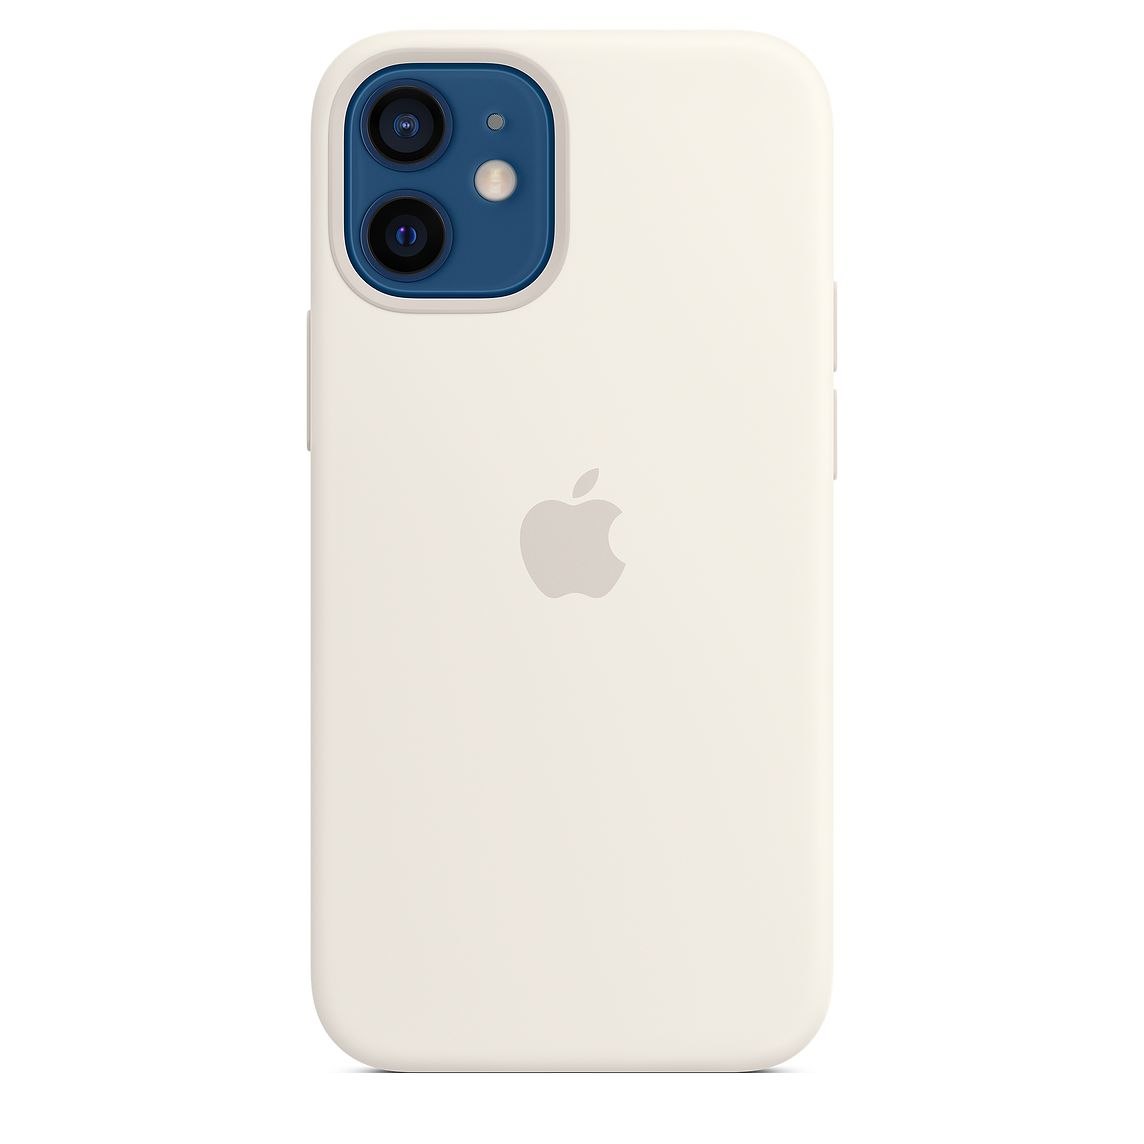 - iPhone 12 mini Silicone Case with MagSafe / Blanco 5